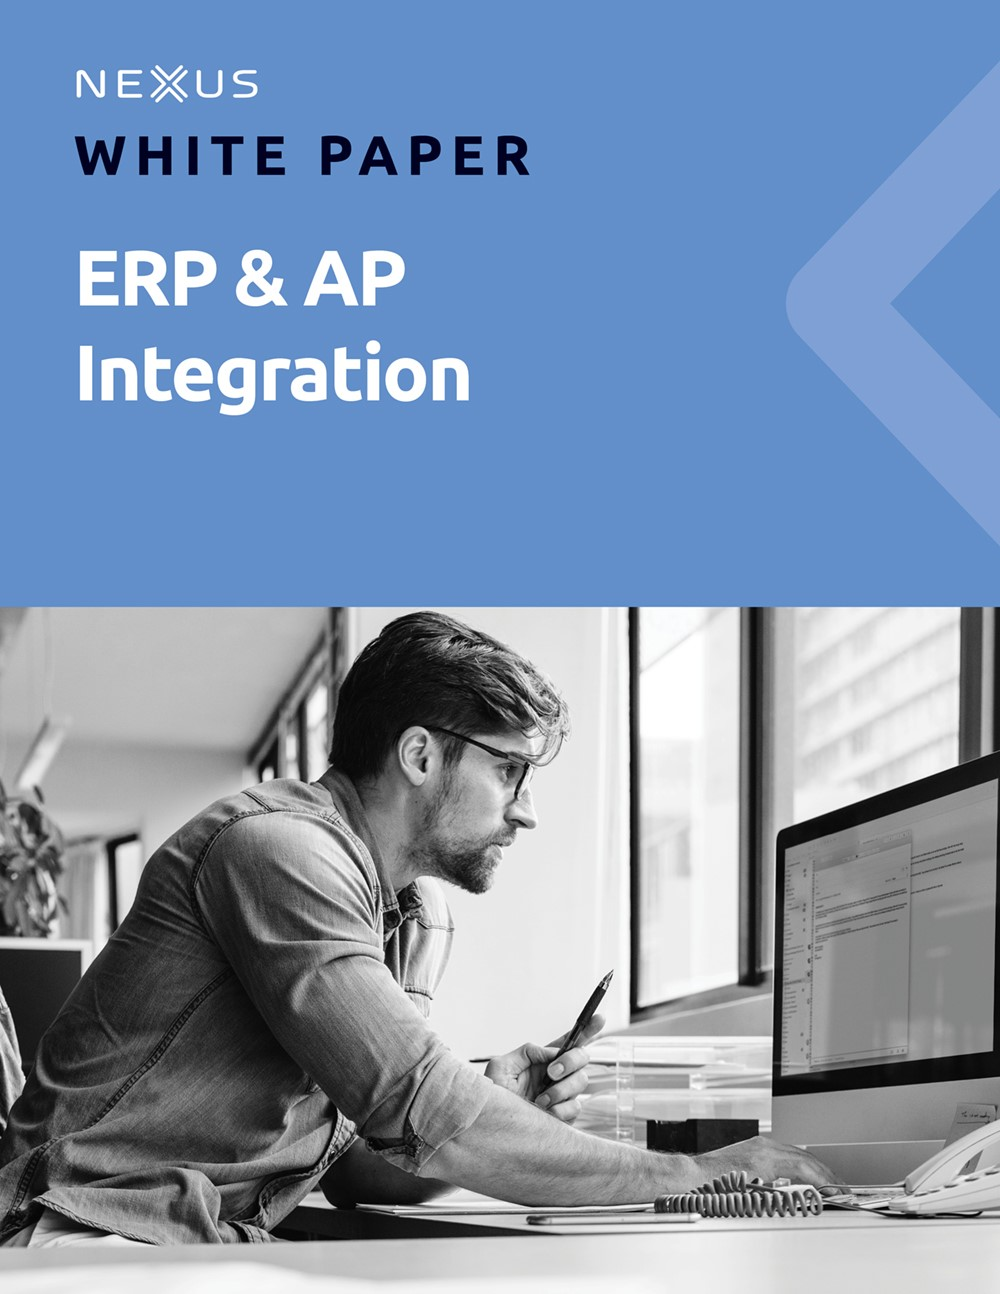 ERP & AP Integration Thumbnail 2.jpg